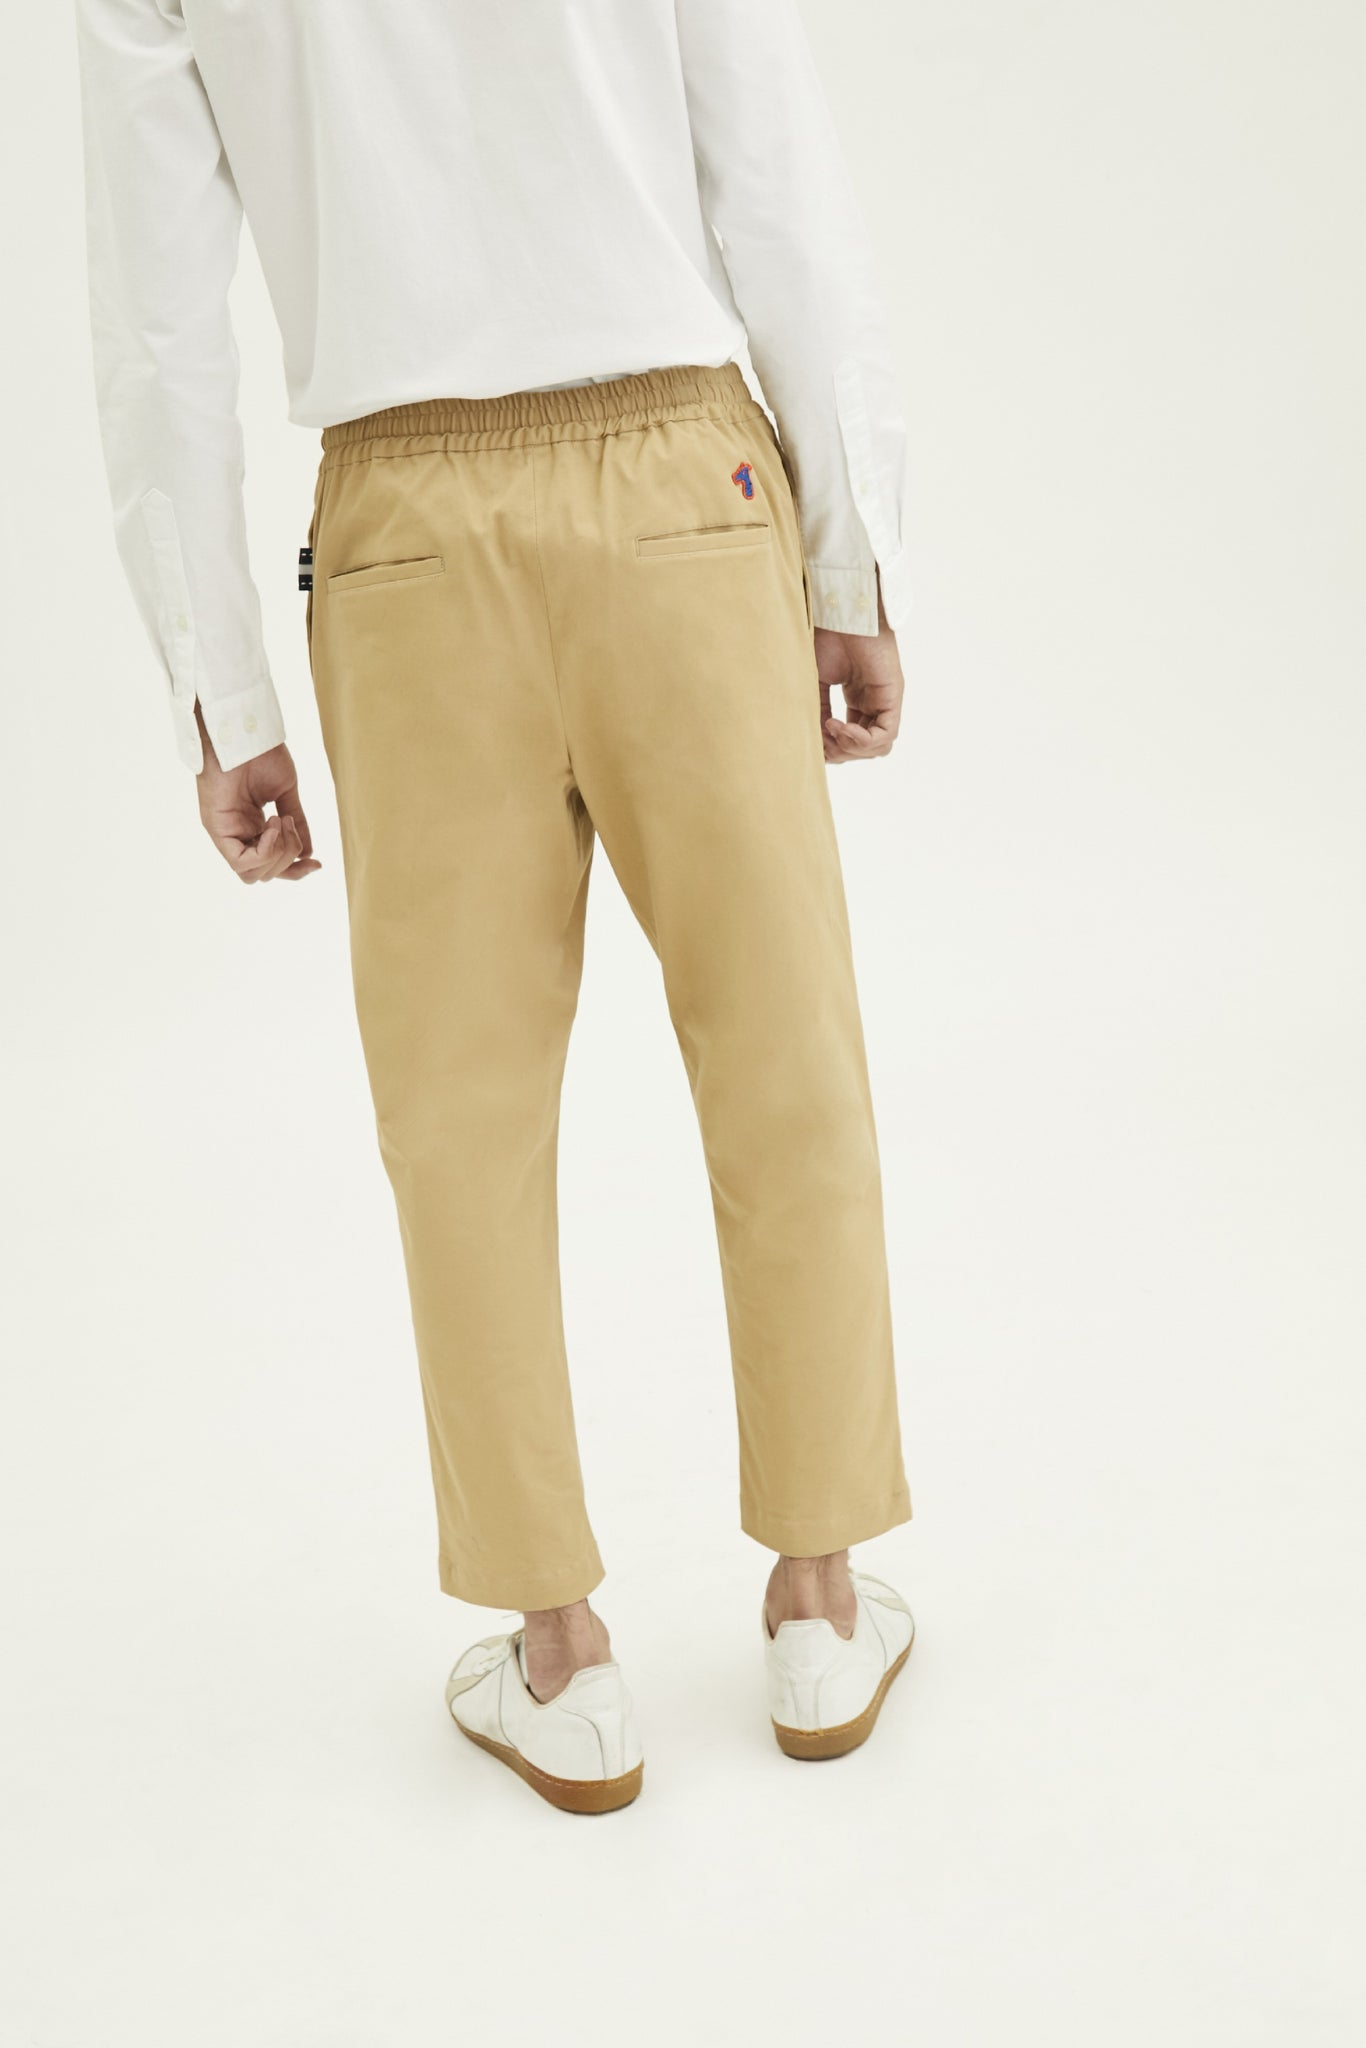 Load image into Gallery viewer, ANKLE PANTS WITH LOGO EMBROIDED (S20MD02022BE1A)